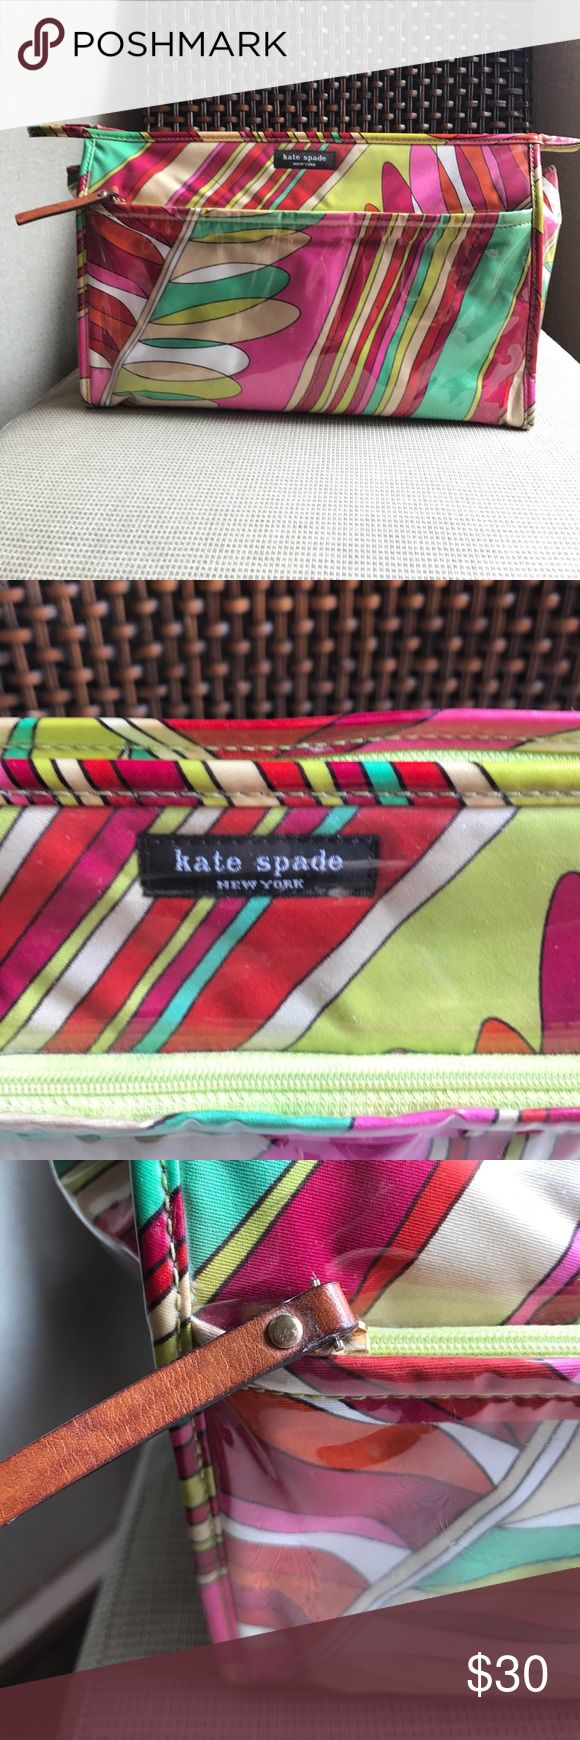 ‼️TODAY ONLY‼️Kate Spade Large Cosmetic Bag Large Cosmetic Bag great for traveling. Plasticized fabric with leather closures. Has one front and one interior pocket. Wipeable and can fit all of your travel essentials. Great bag at a great price! Kate Spade Bags Travel Bags